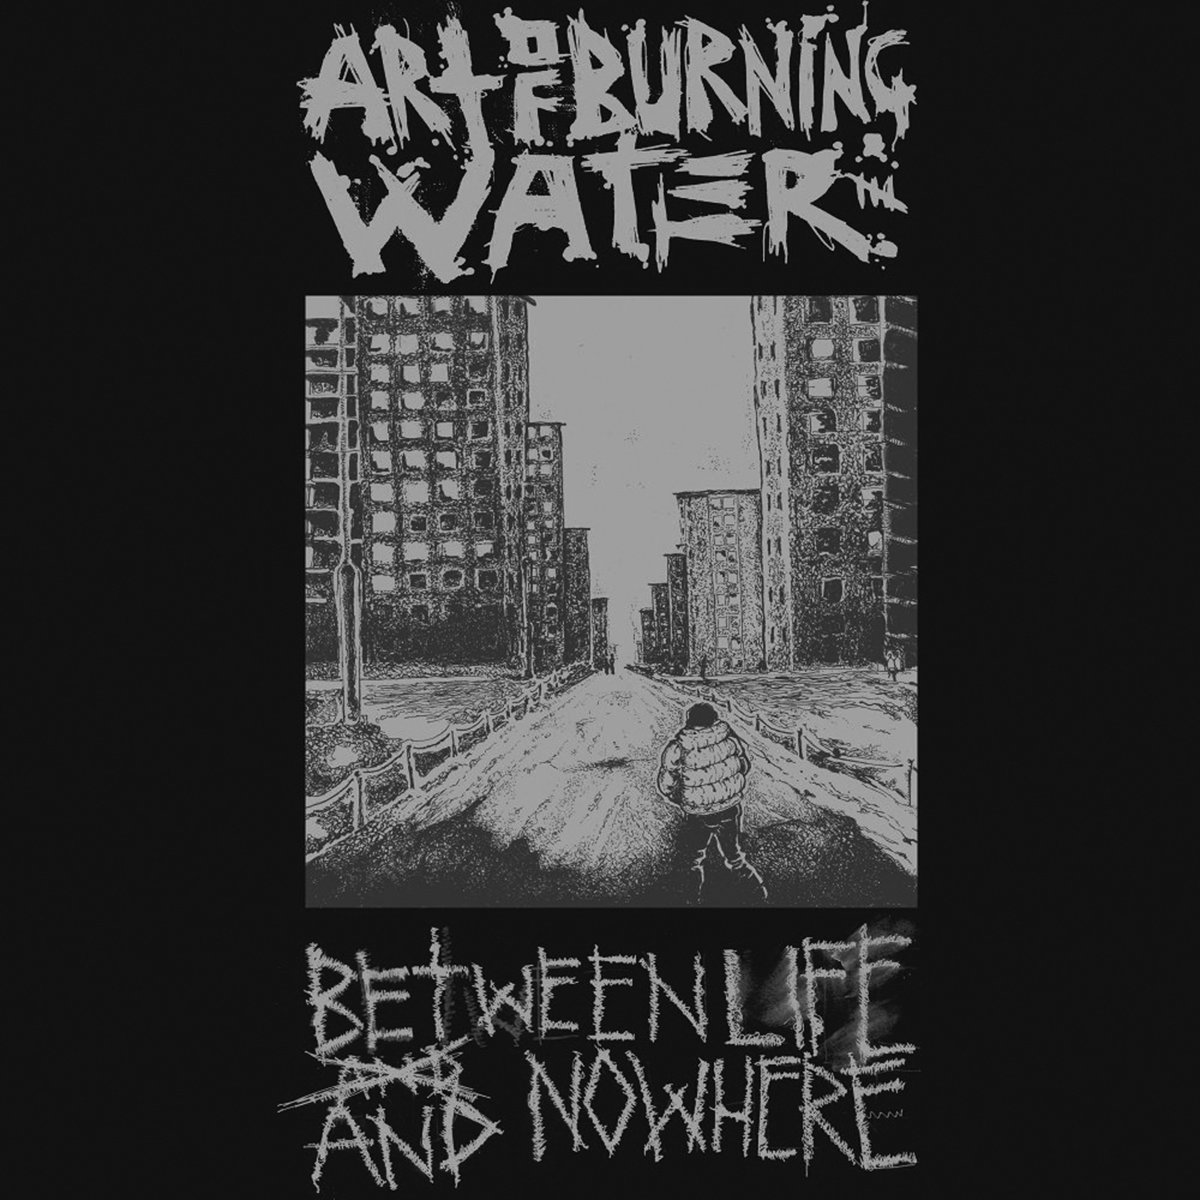 ART OF BURNING WATER Between Life And Nowhere - vinyl LP